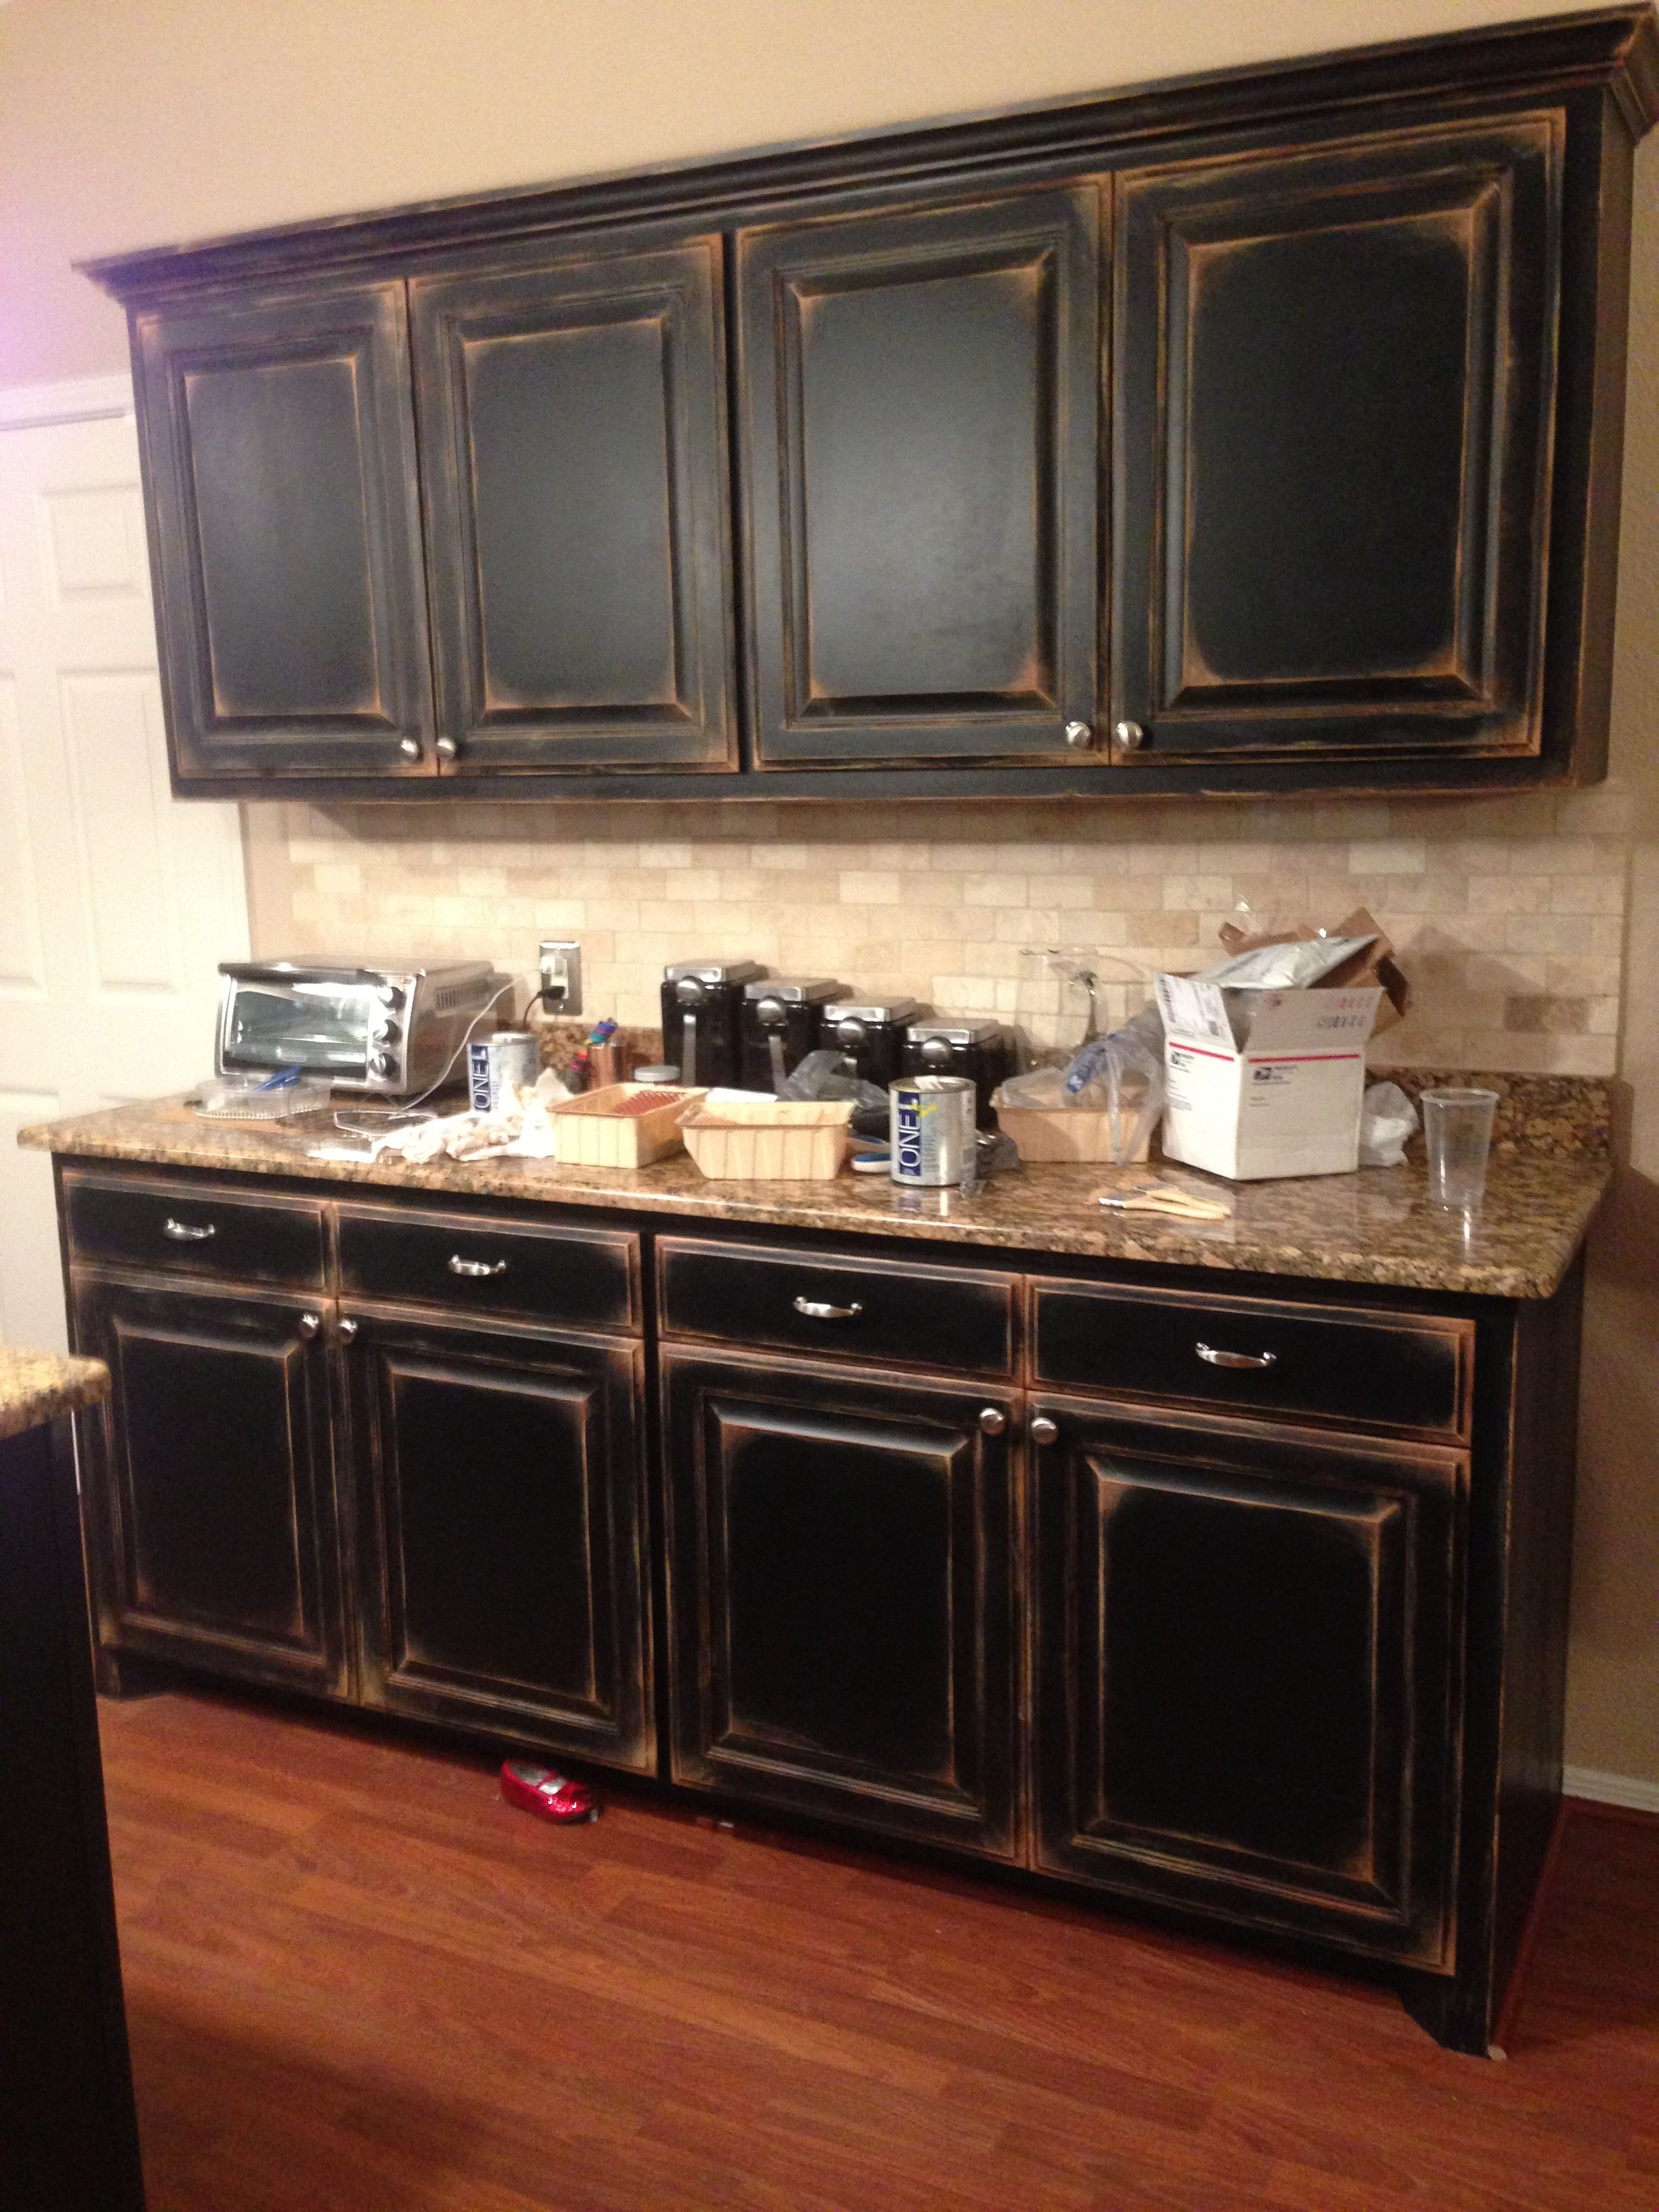 Diy Painting Kitchen Cabinets Antique White Black Cabinets With Faux Distressing Used 3 Different